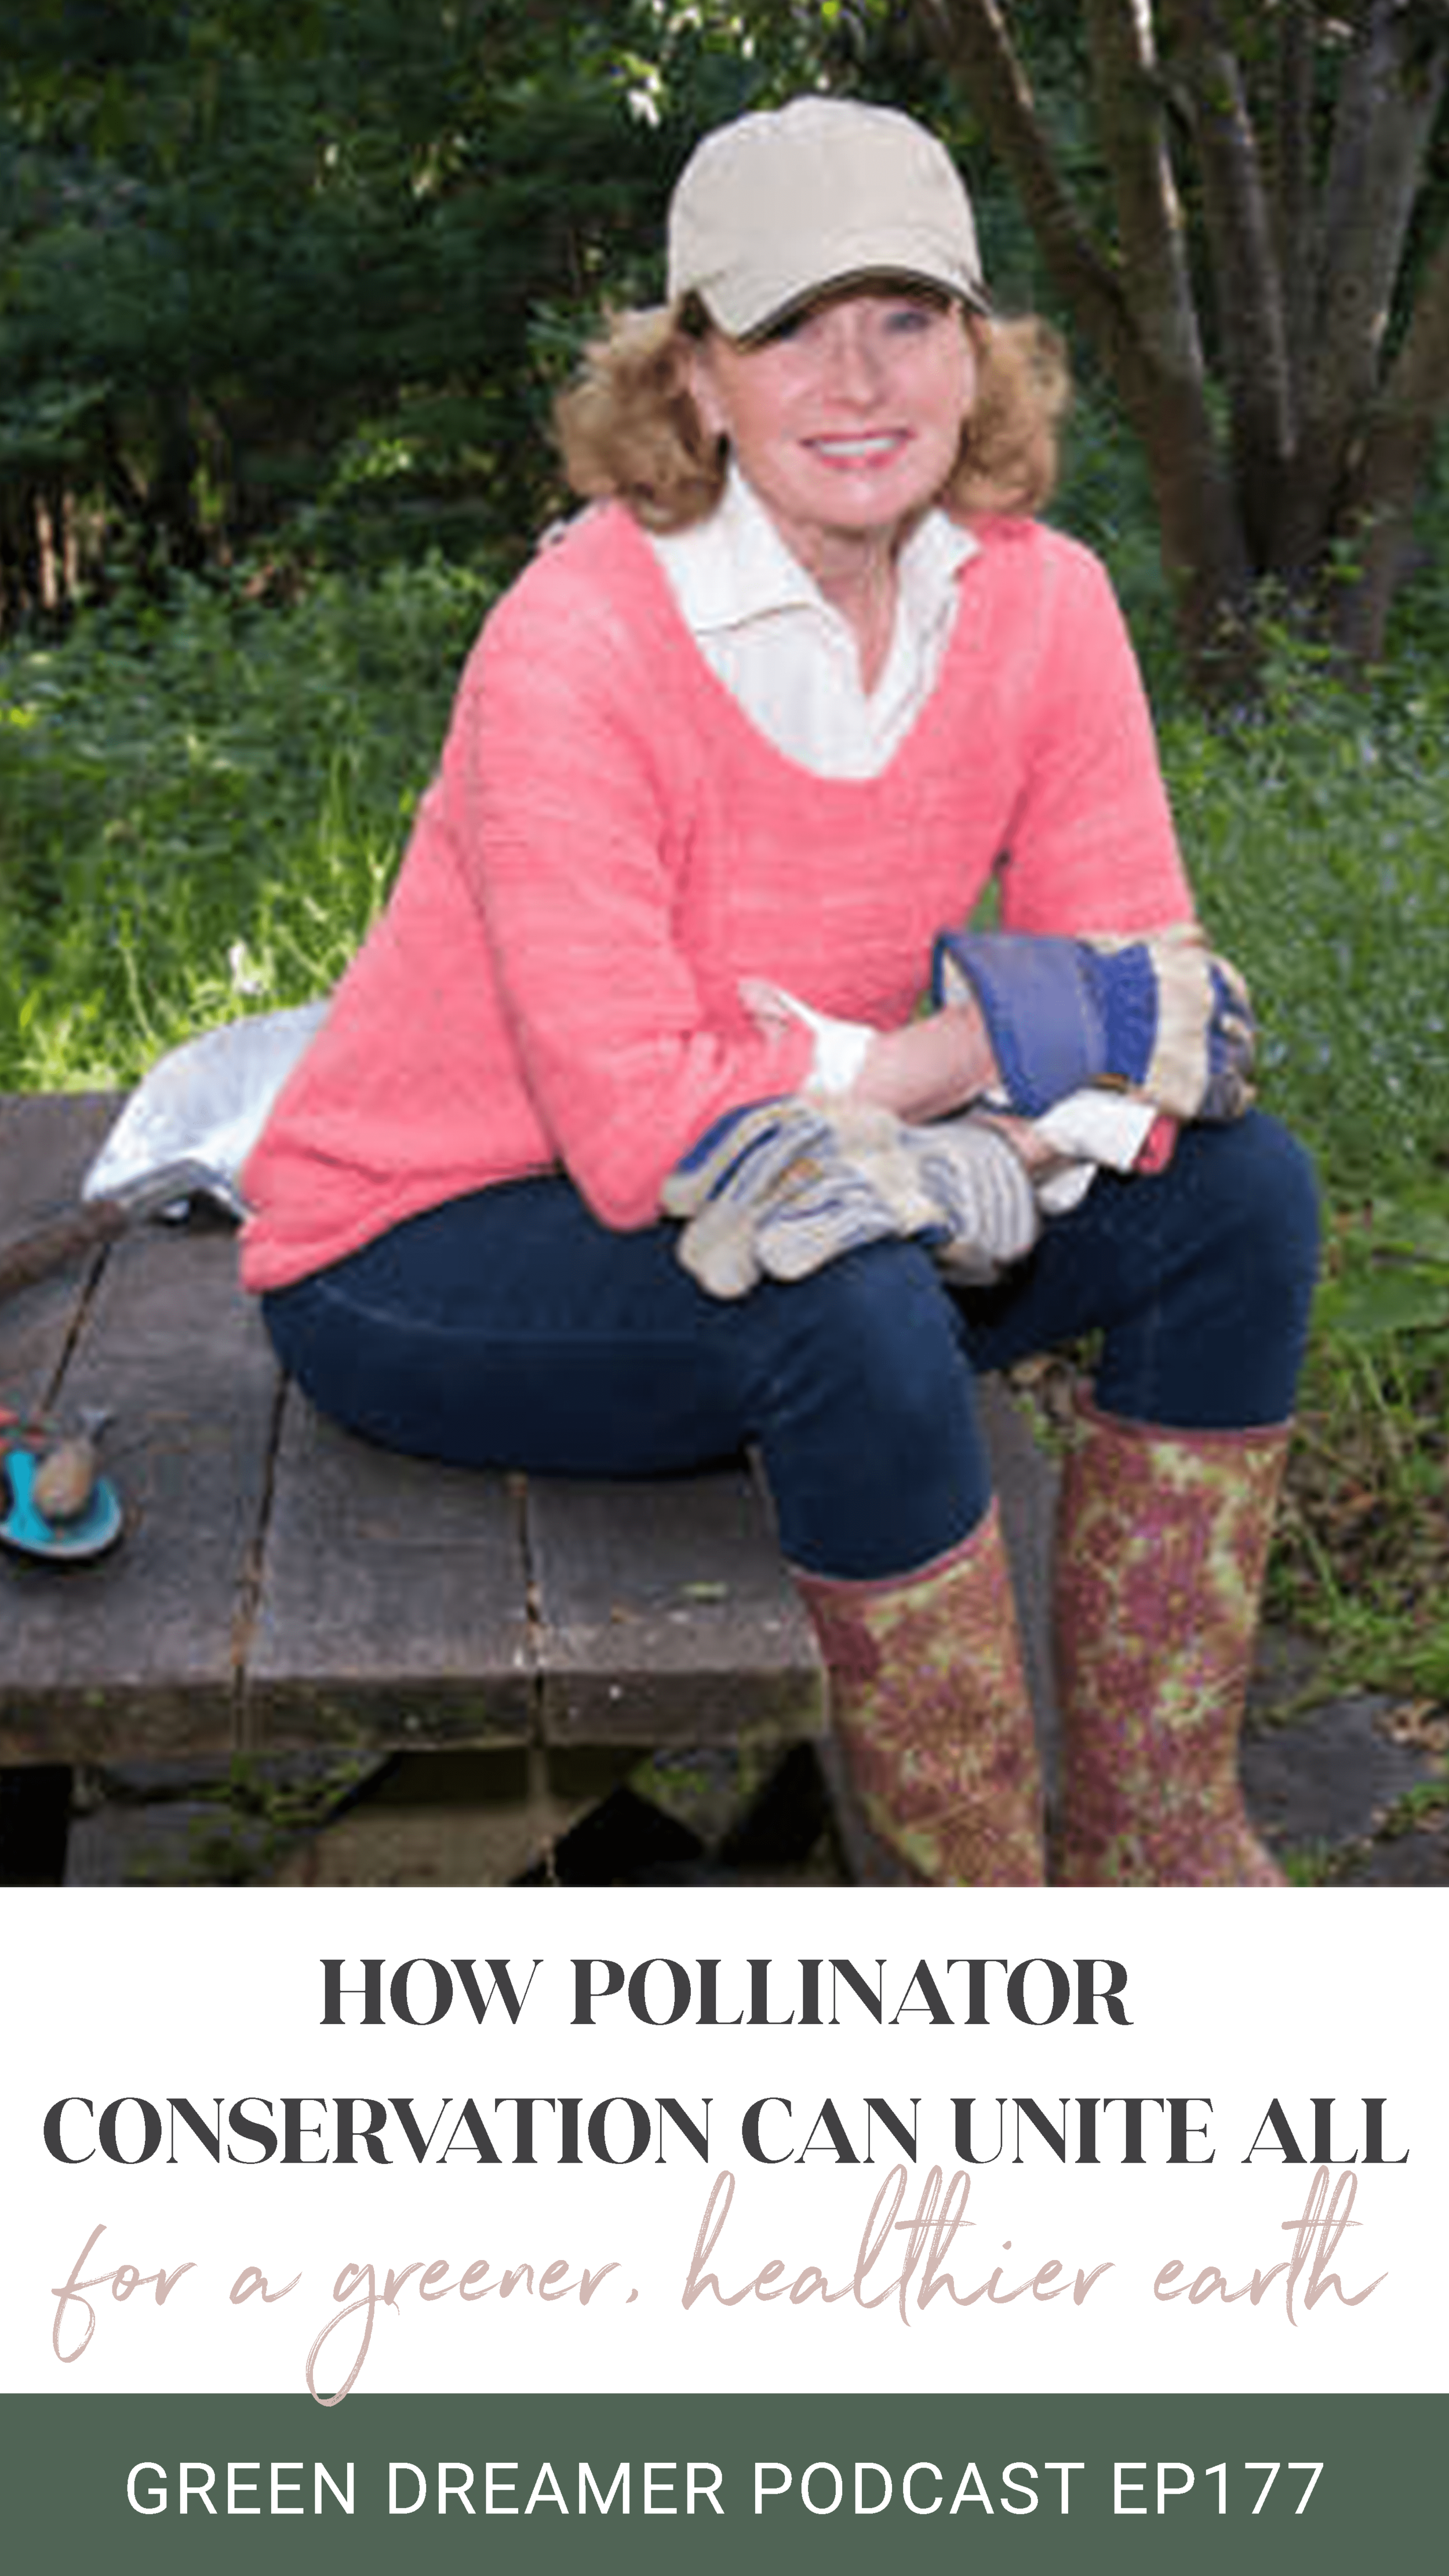 How Pollinator Conservation Can Unite Us All - Green Dreamer Podcast